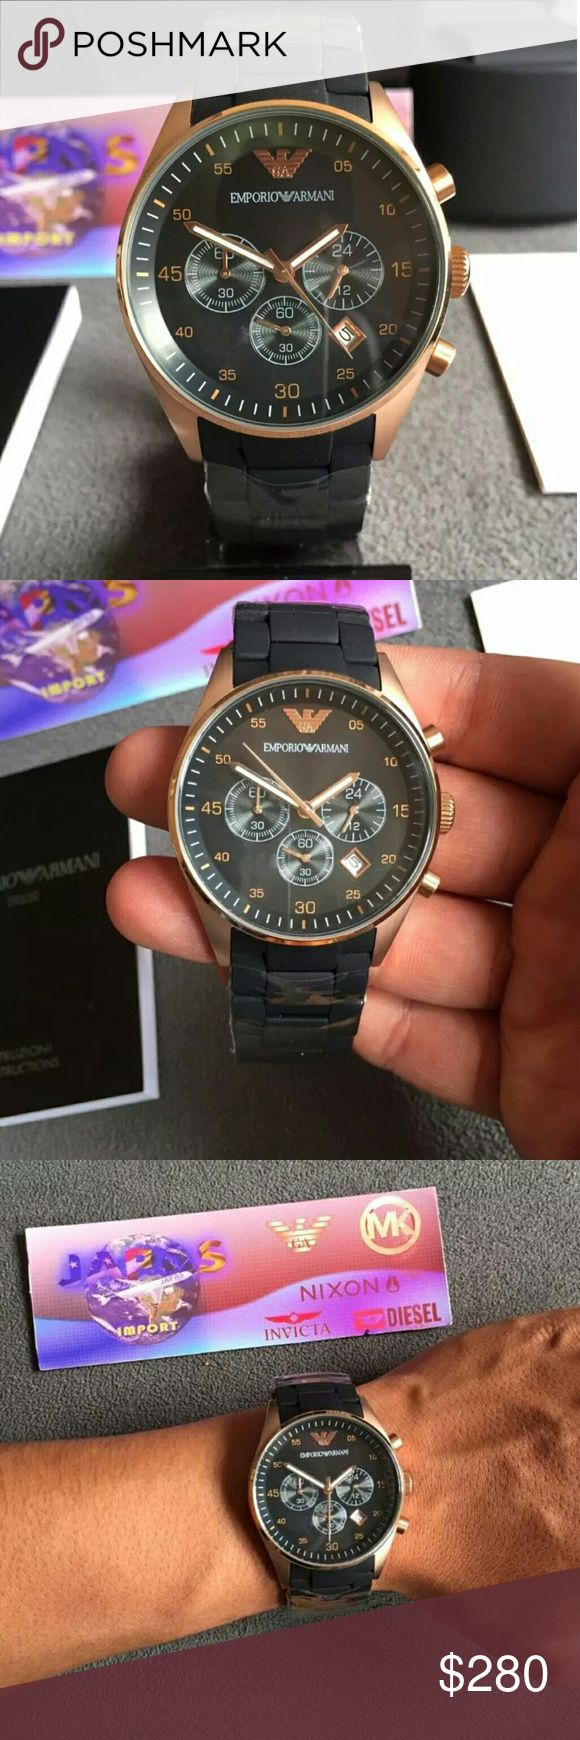 Brand New emporio Armani Chronograph watch Emporio Armani Chronograph Rose Gold Black Men's Watch   FIRM PRICEFIRM PRICE FIRM PRICE FIRM PRICE   $280.00  . AUTHENTIC WATCH   . AUTHENTIC BOX   . AUTHENTIC MANUAL    SHIPPING   PLEASE ALLOW 3-4 BUSINESS DAYS FOR ME TO SHIPPED IT OFF.I HAVE TO GET IT FROM MY STORE.   THANK YOU FOR YOUR UNDERSTANDING. Emporio Armani Accessories Watches